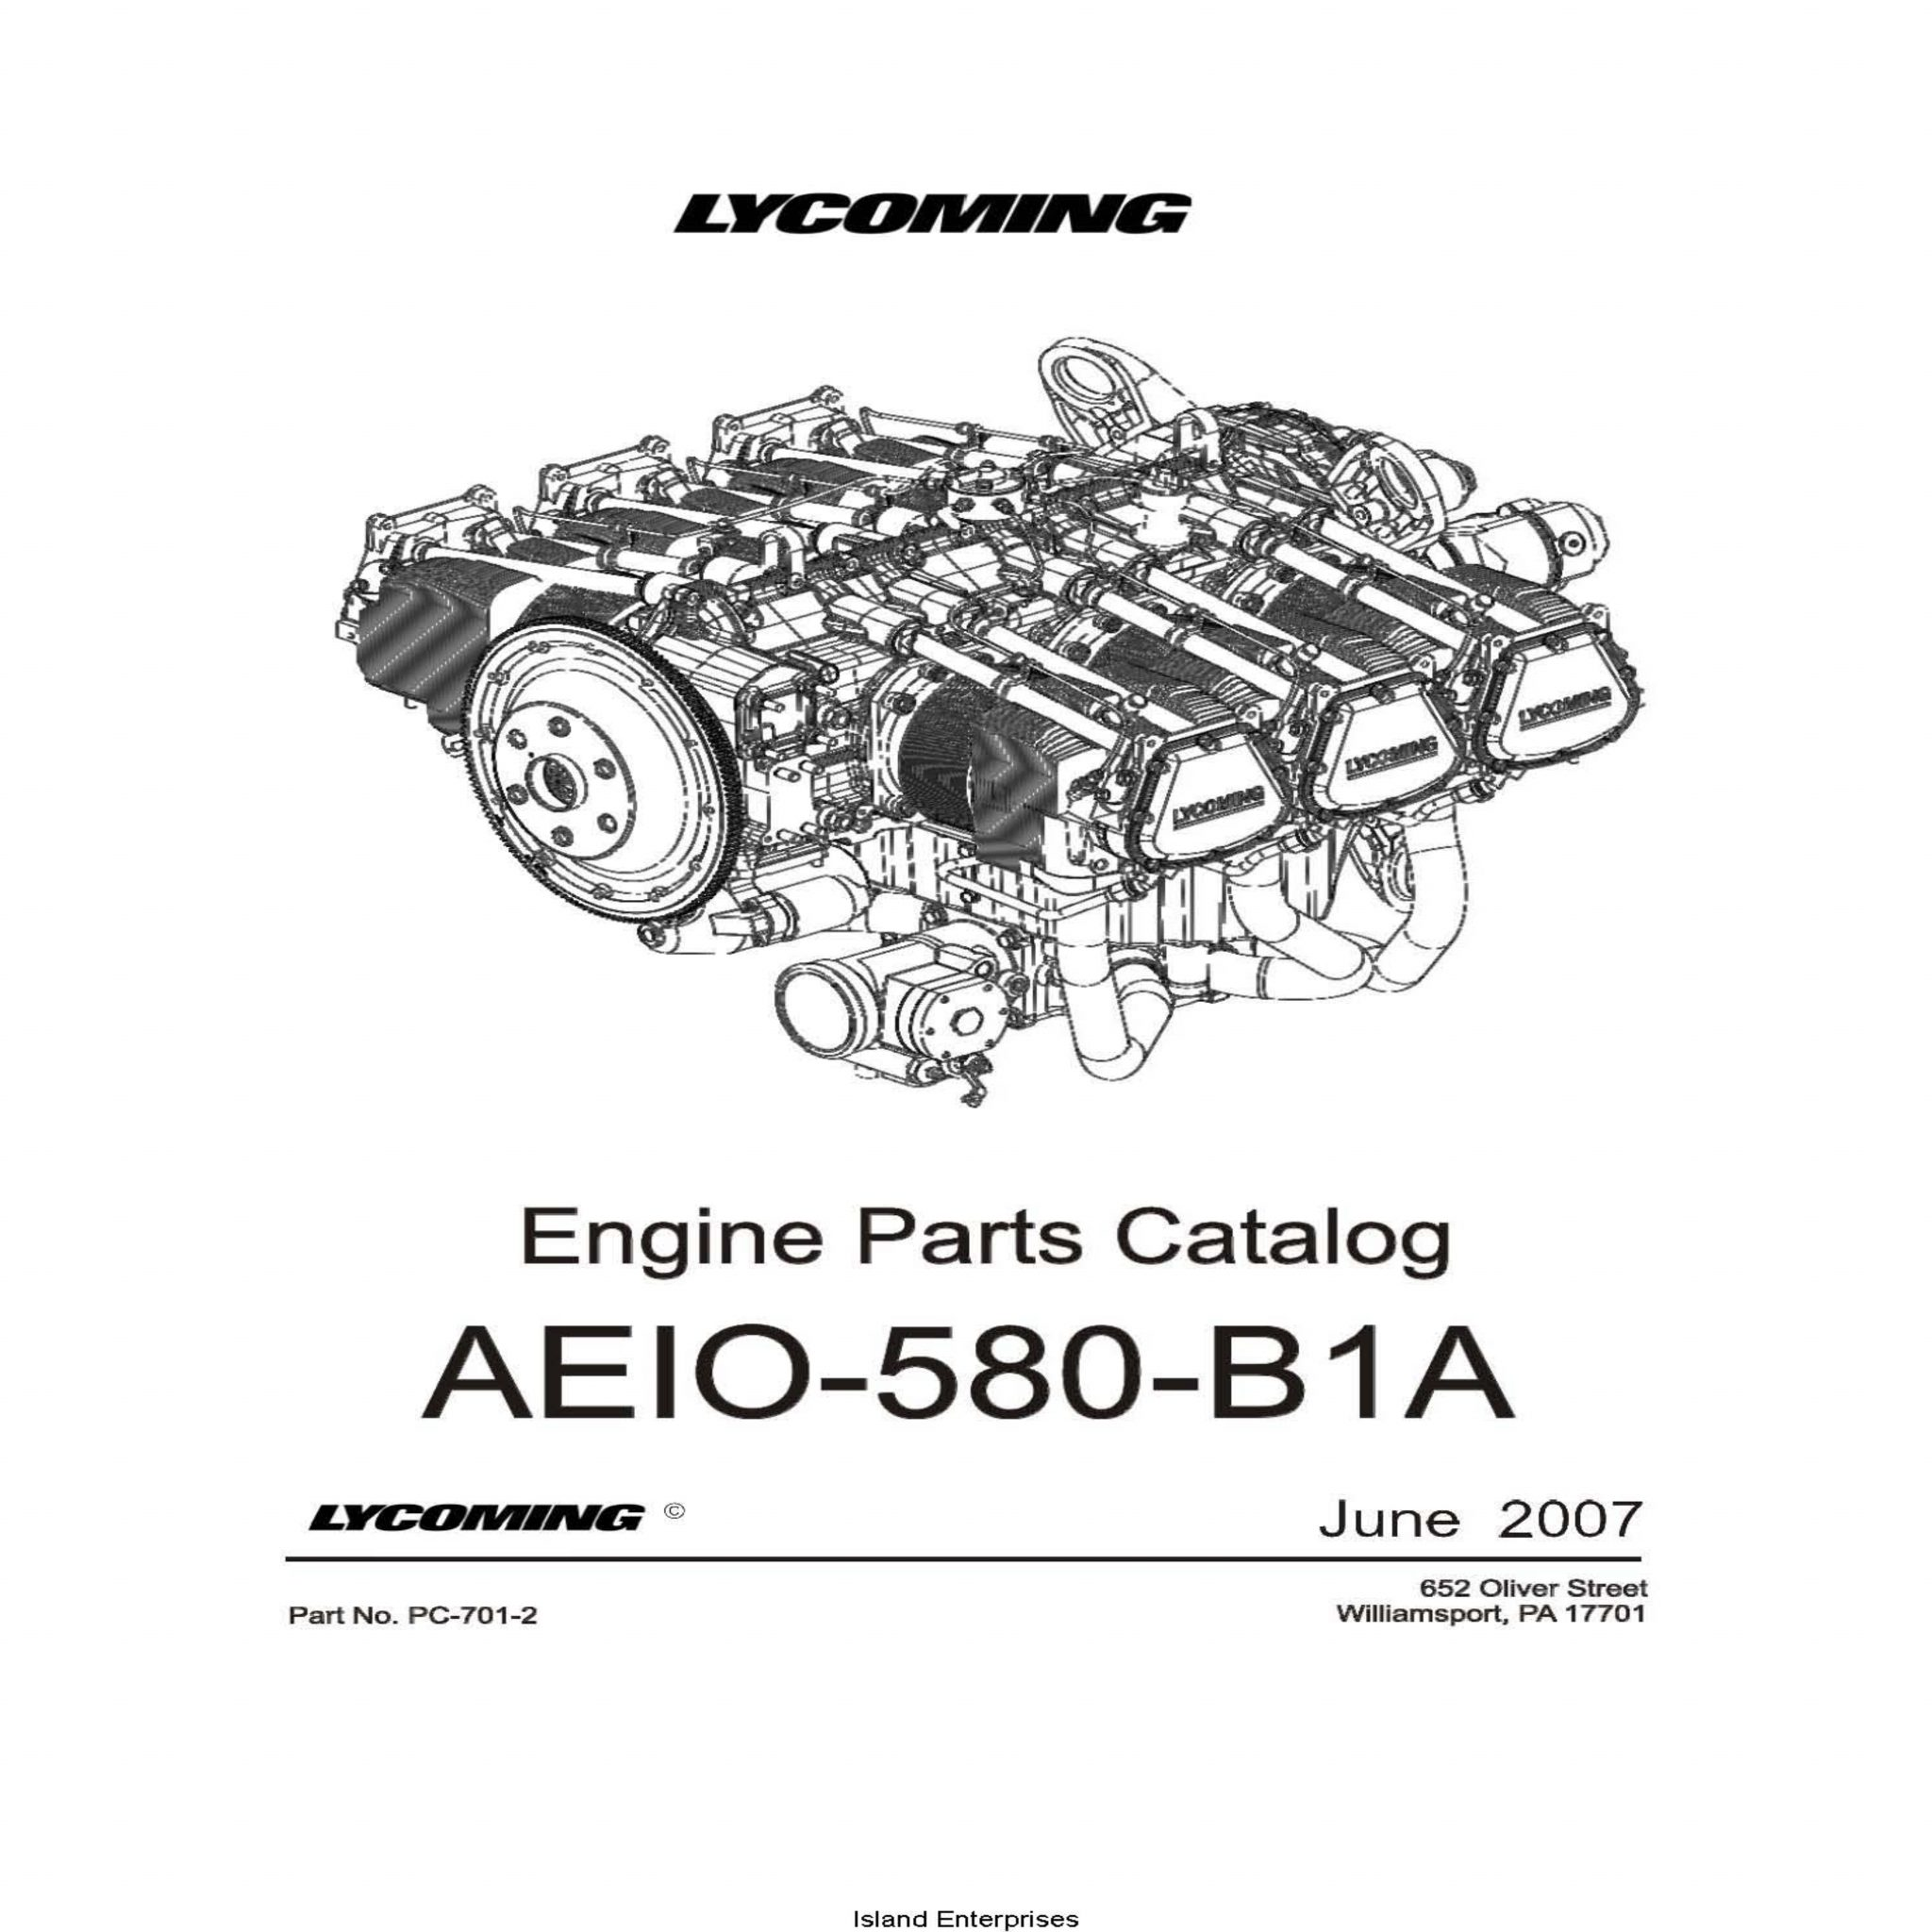 Lycoming Parts Catalog AEIO-580-B1A Part # PC-701-2